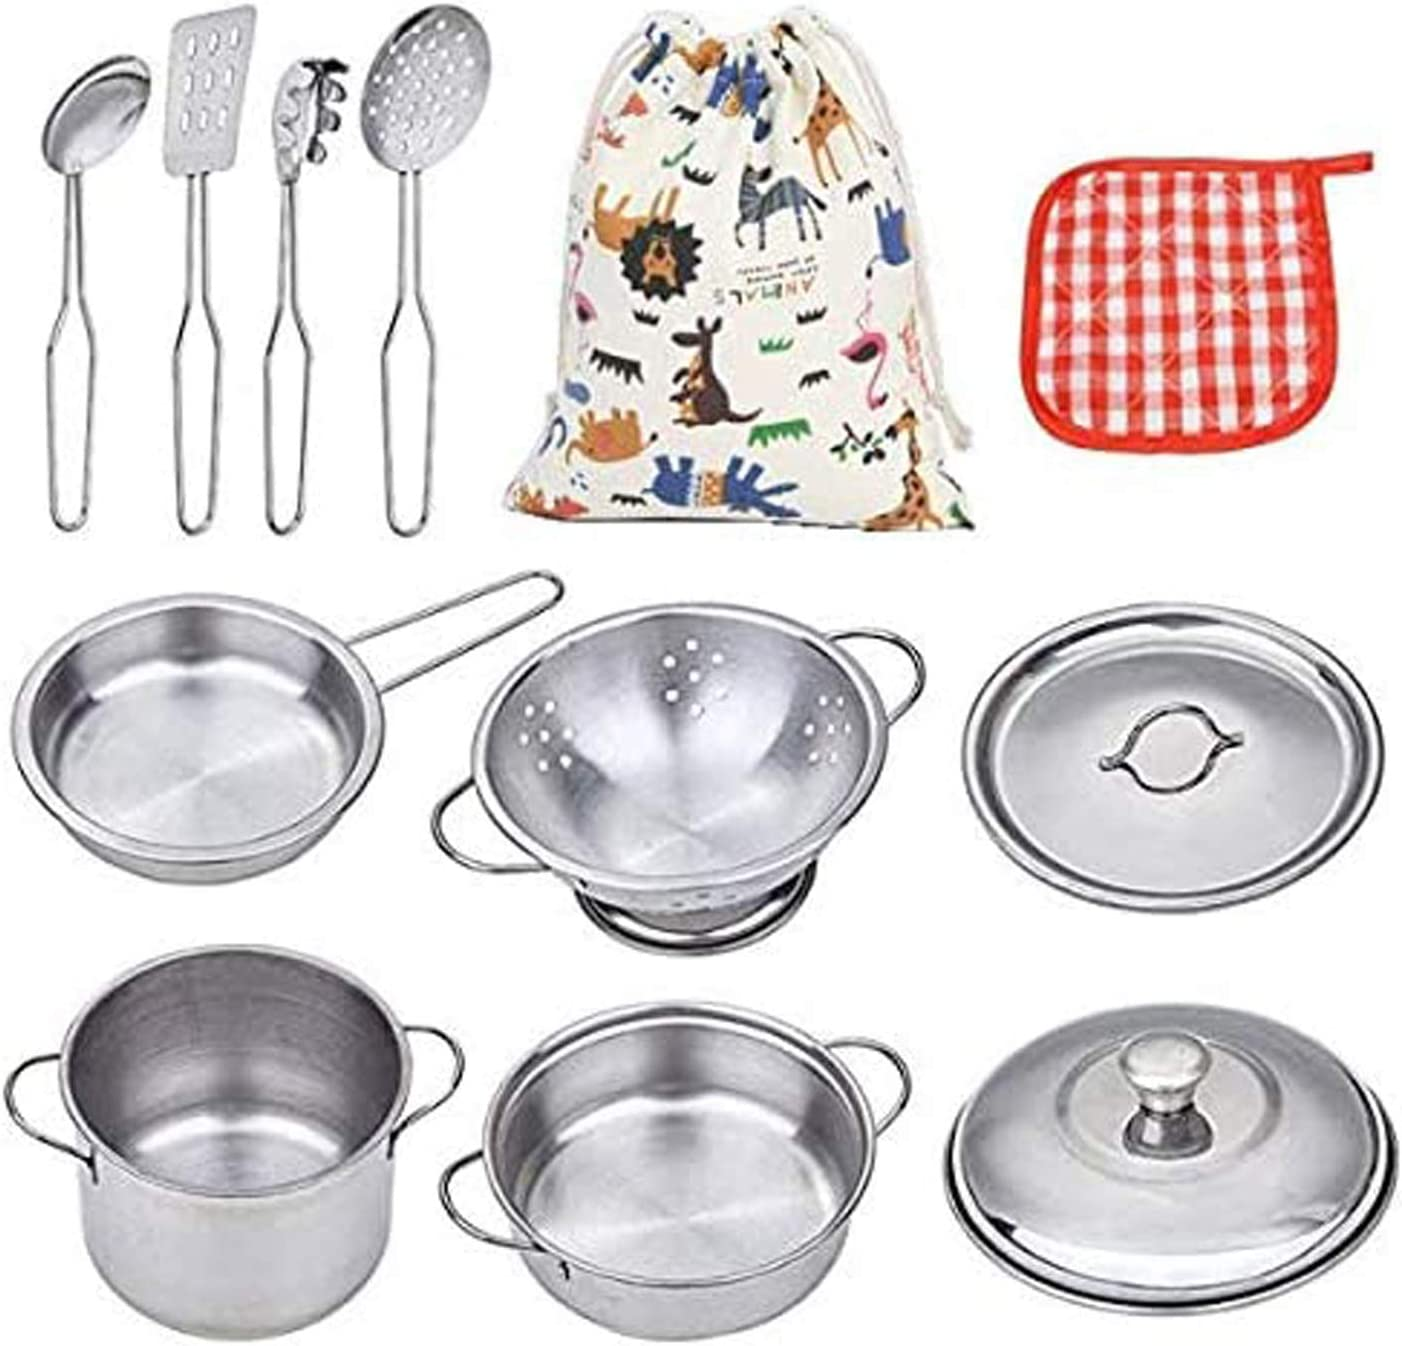 Amazon Com Vipamz My First Play Kitchen Toys Pretend Cooking Toy Cookware Playset For Kids 11 Pieces Stainless Steel Pots And Pans With Cooking Utensils Dishwasher Safe Toys Games